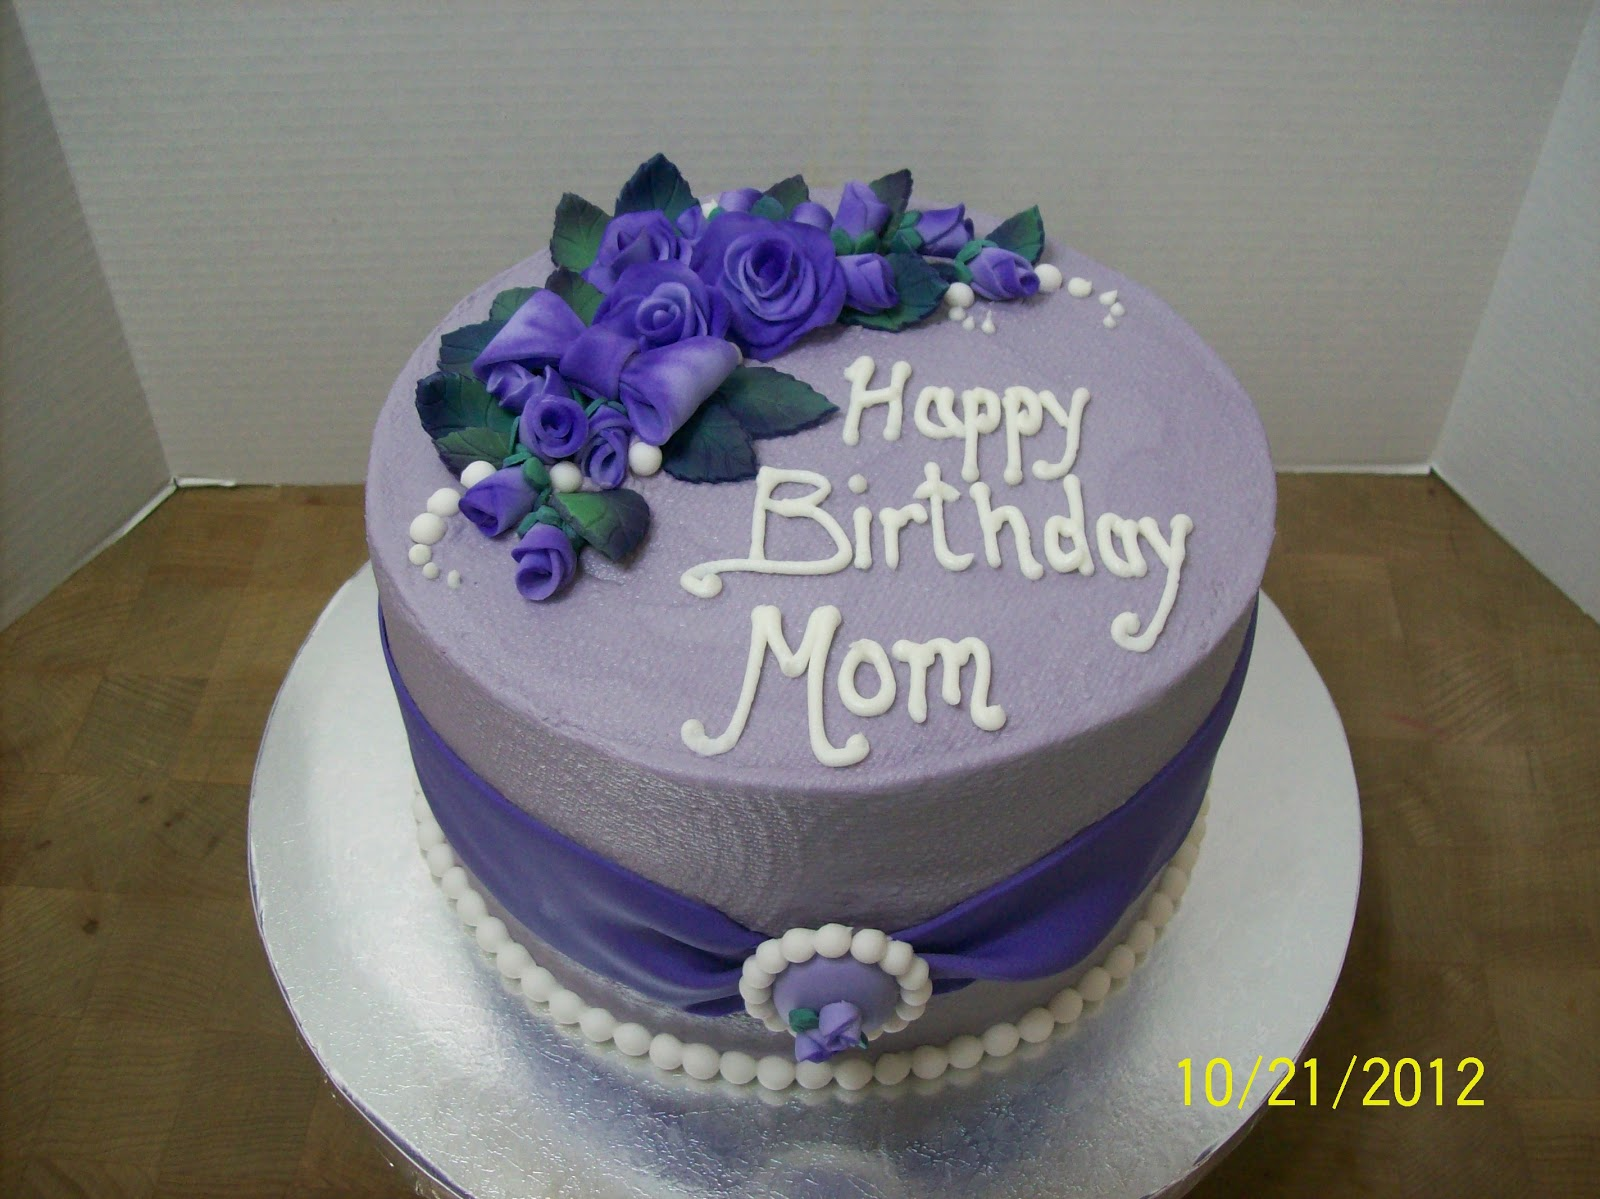 Cake Design For Mothers : Image Gallery october birthday cakes mom